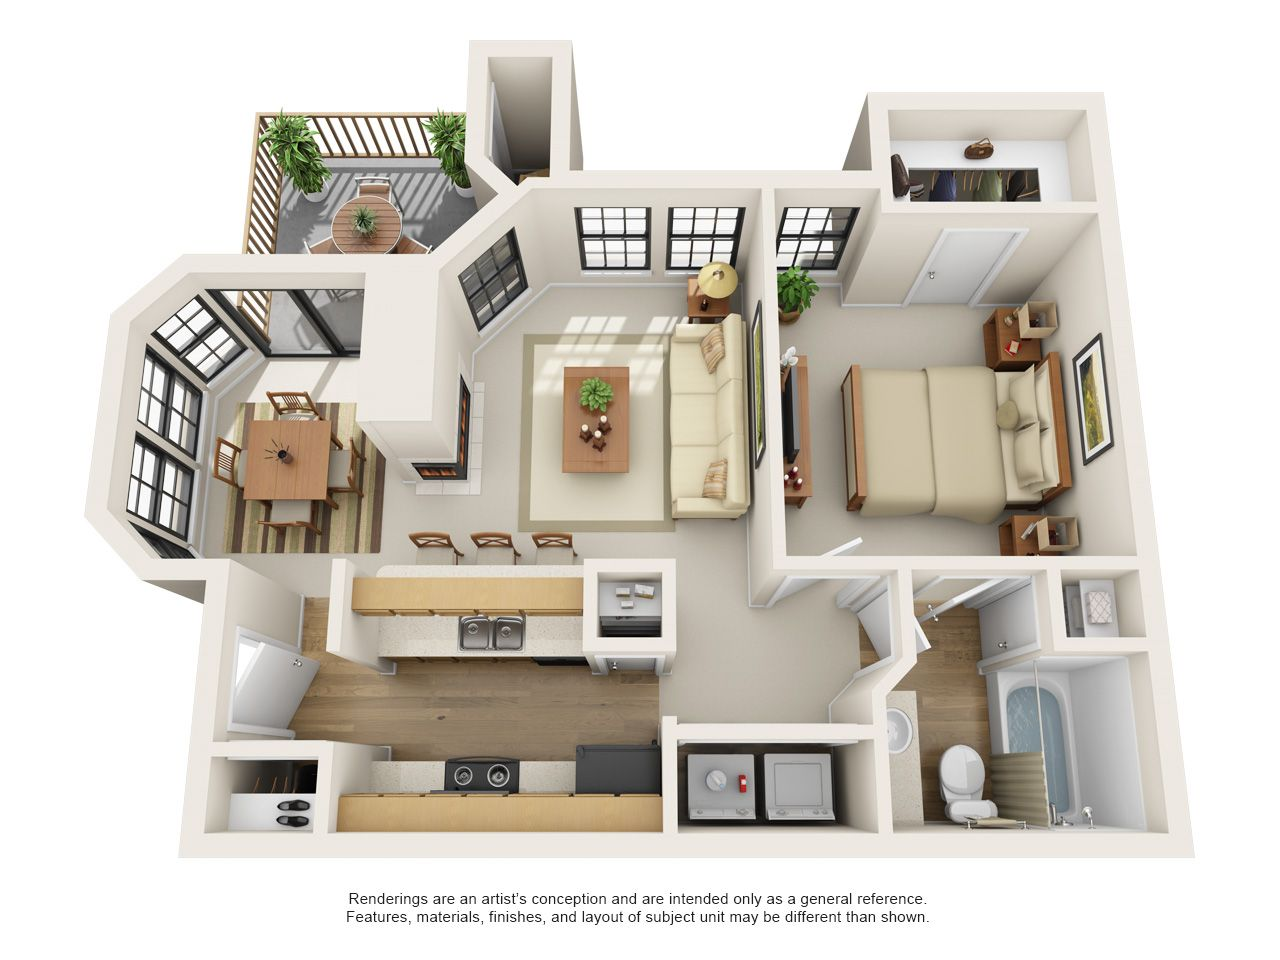 One And Two Bedroom Apartments In Dallas Tx Layouts Dallas Texas Apartment Steadfast Apartment Layout Sims House Plans House Layout Plans